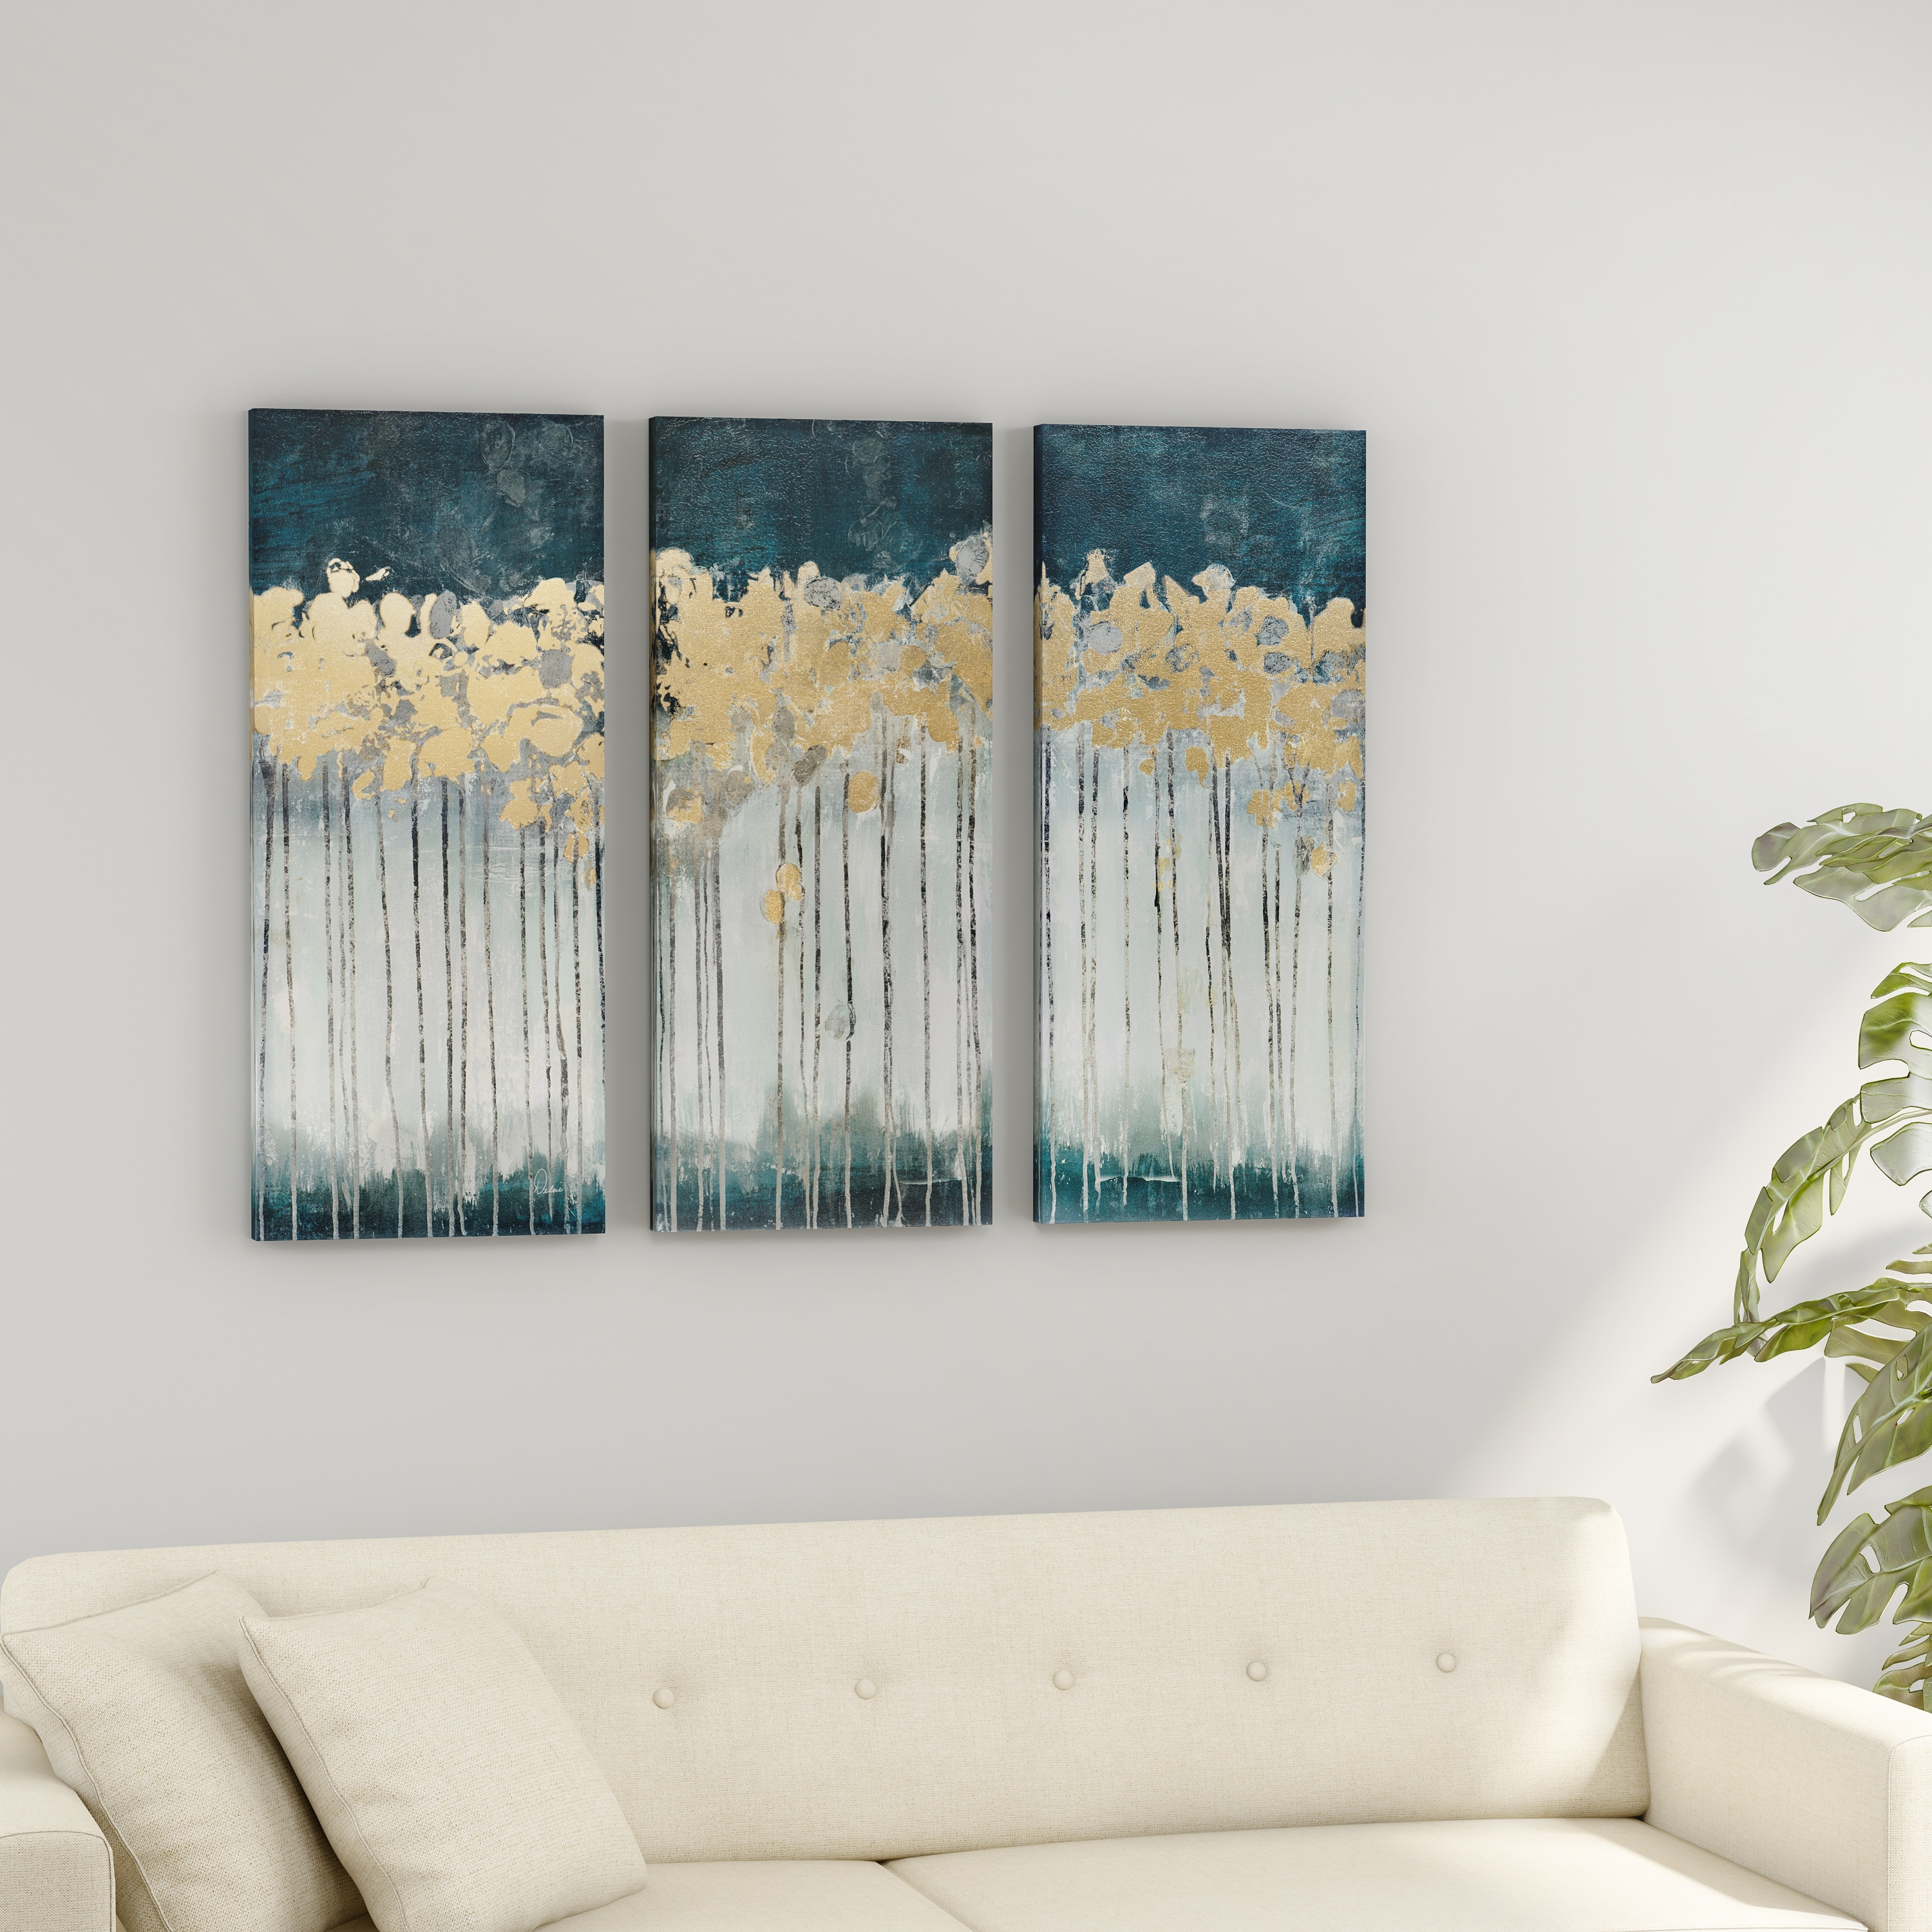 Art Wall Matching Sets Find Great Art Gallery Deals Shopping At Overstock